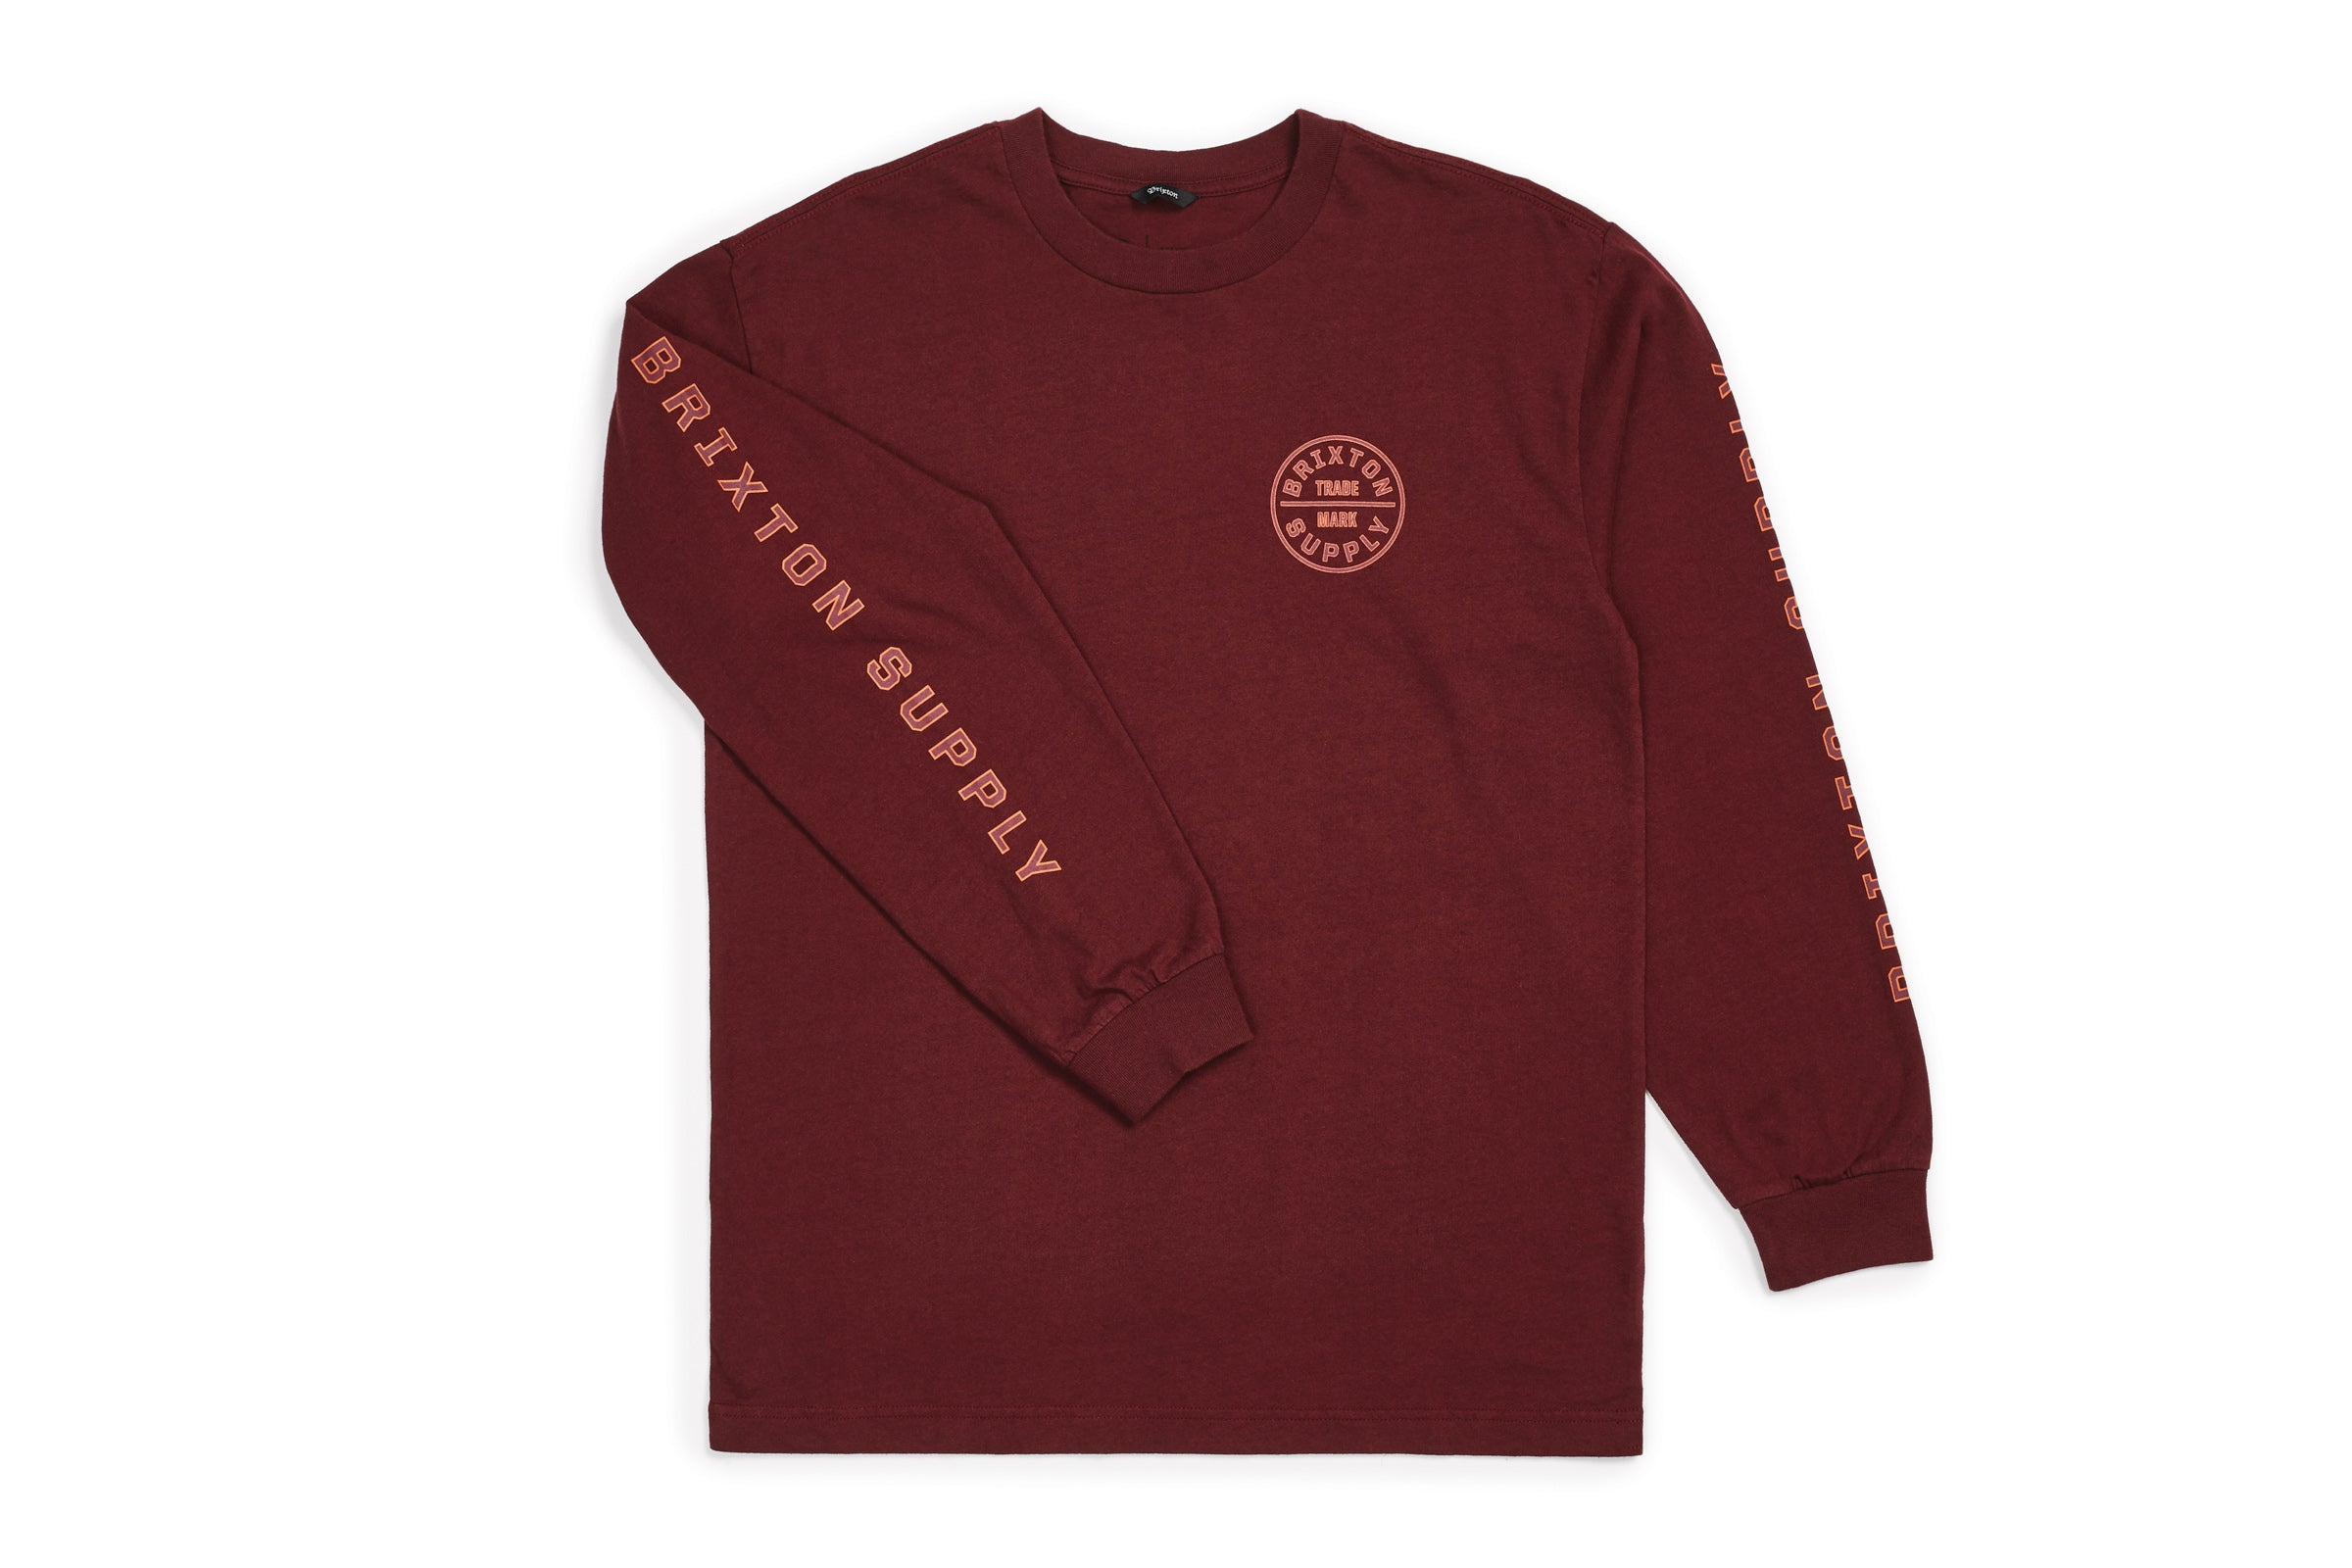 Brixton Oath IV Long Sleeve Shirt - 88 Gear